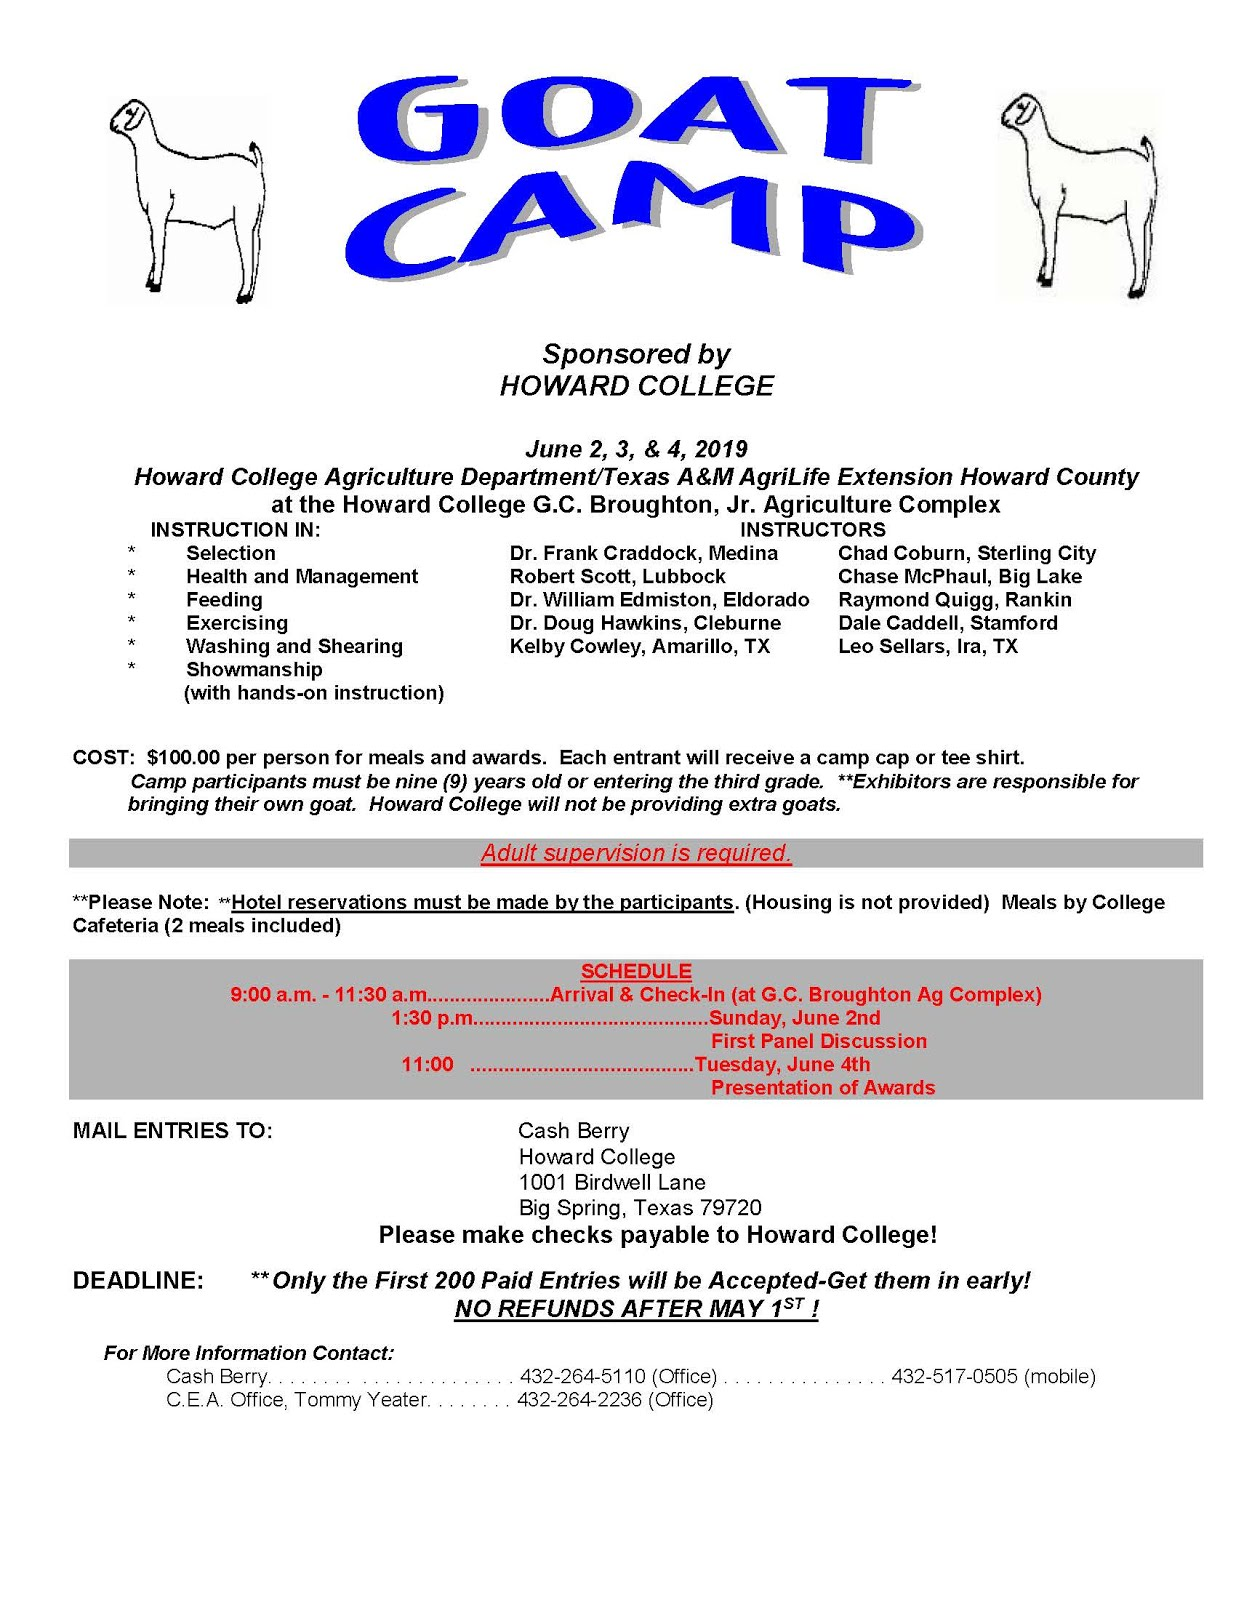 Comal County 4-H Online News: Goat Camp - June 2-4